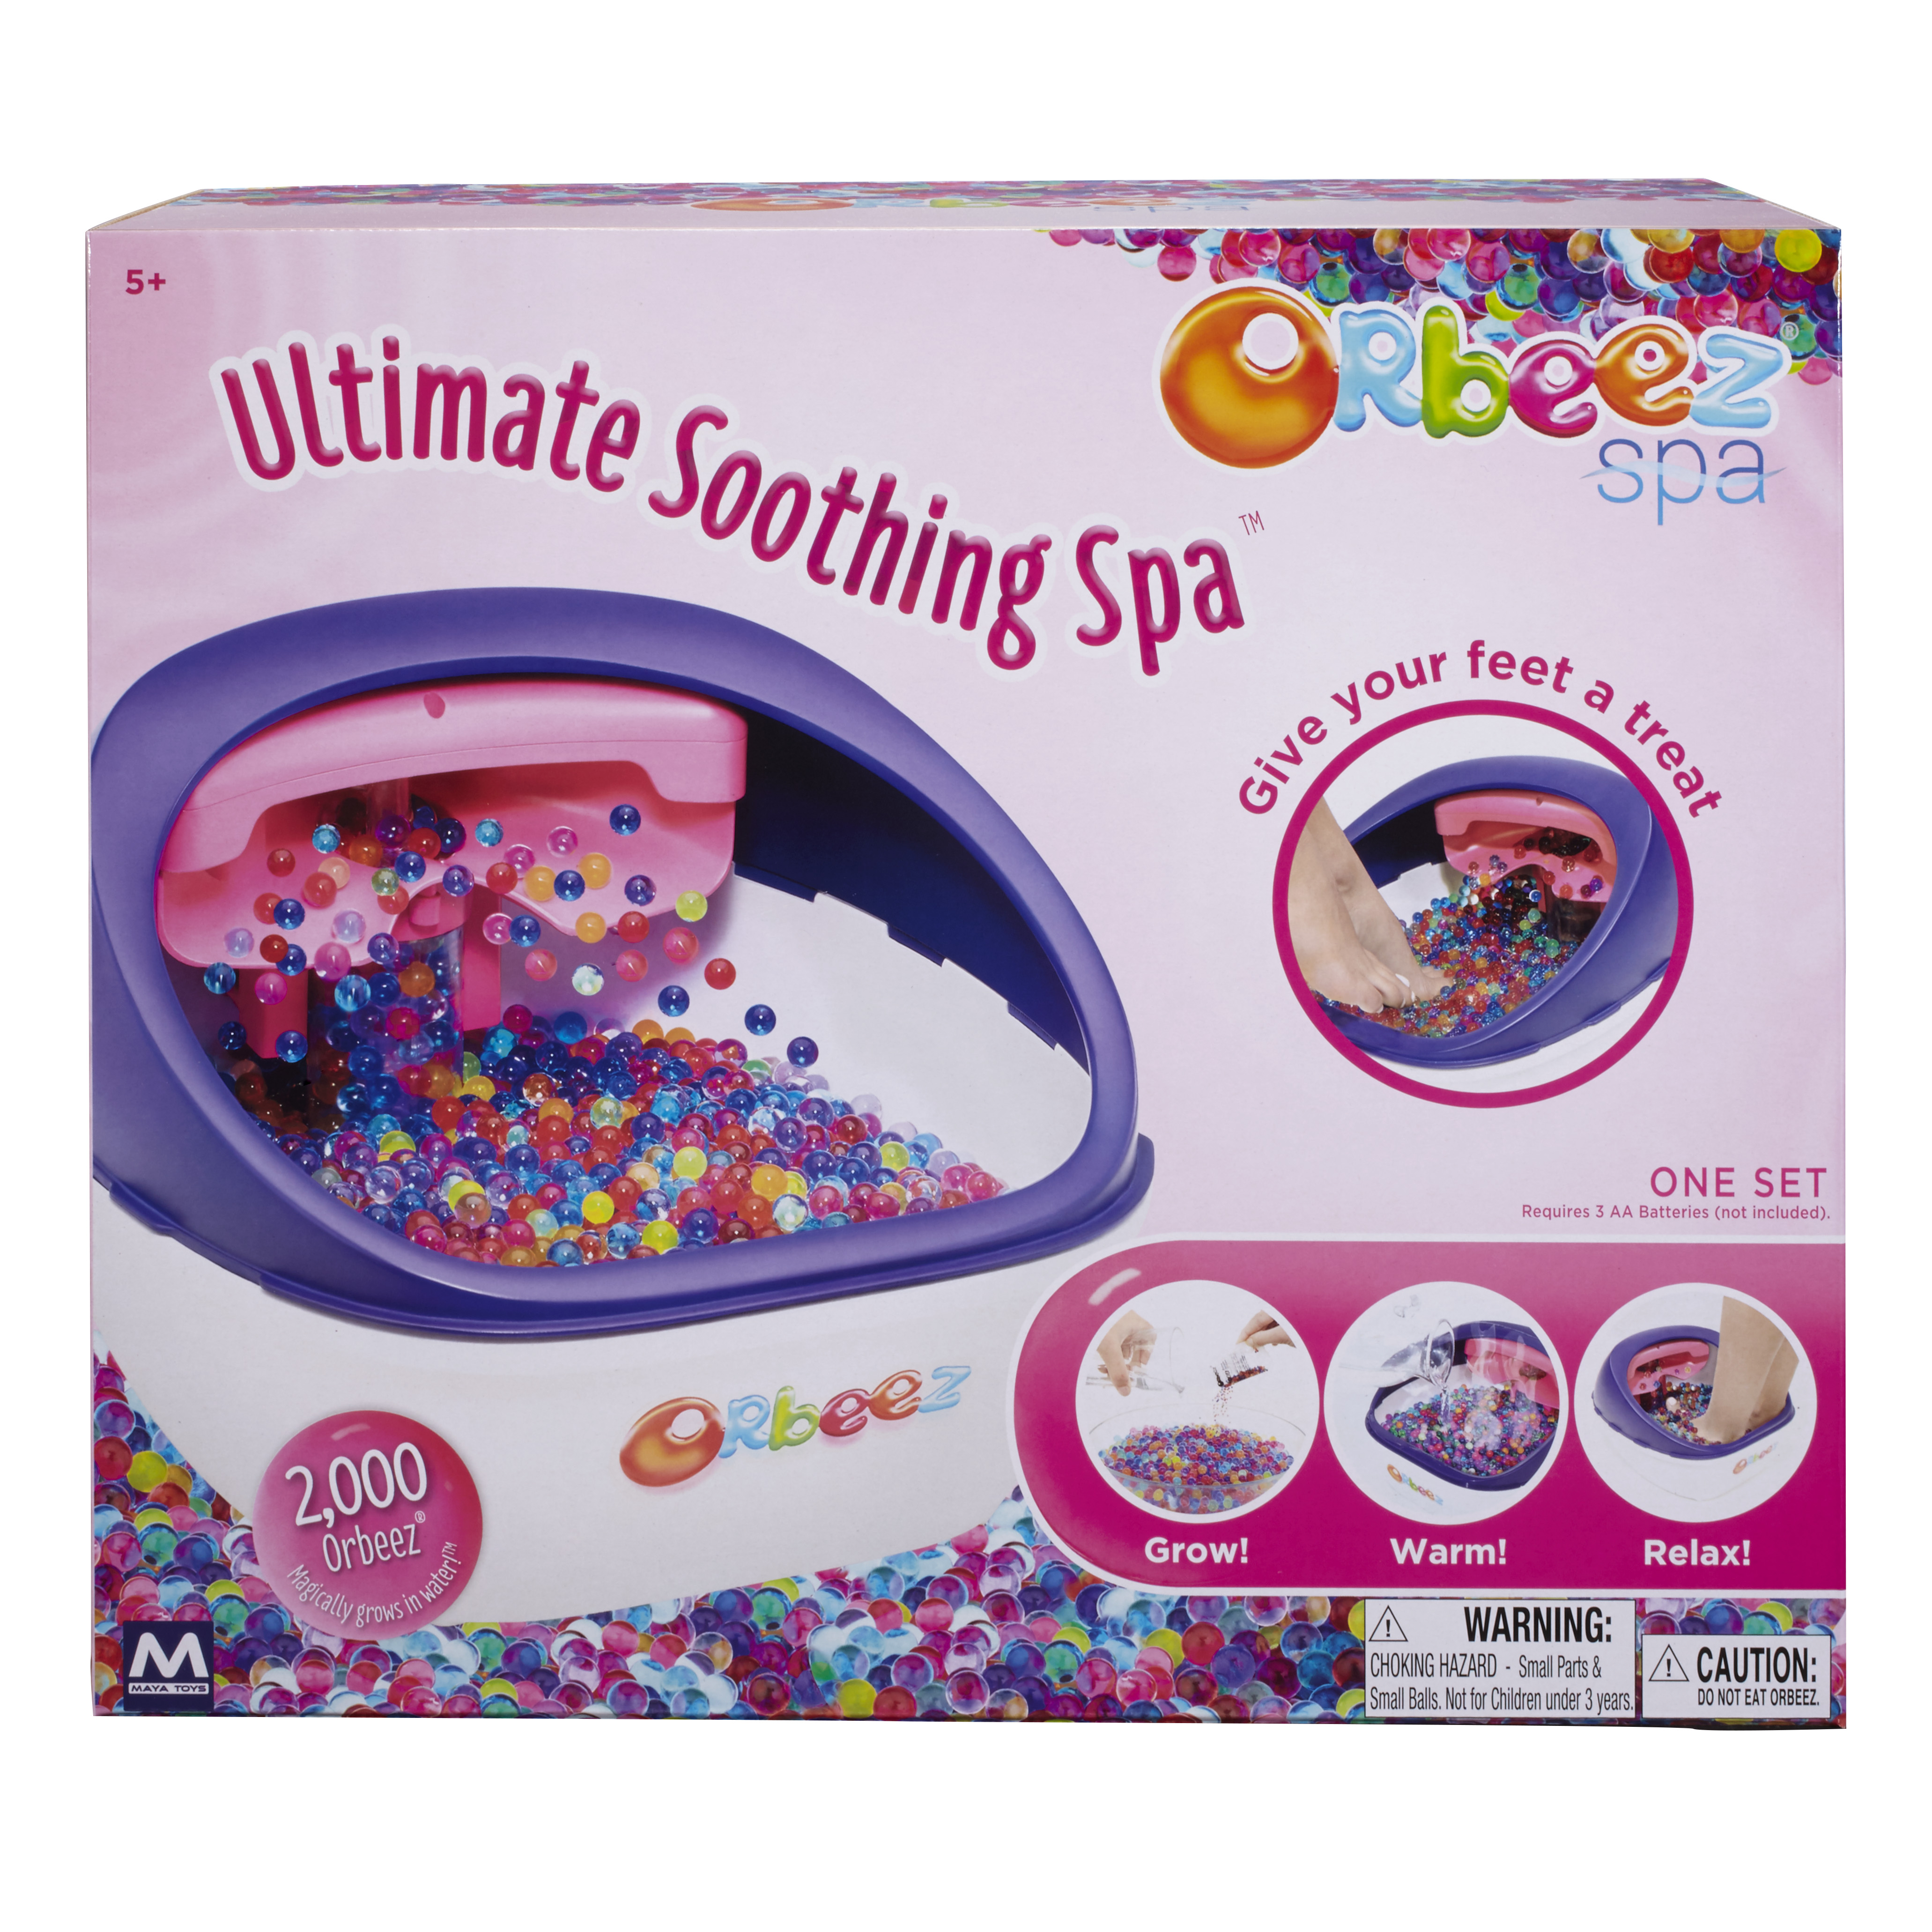 orbeez soothing spa instructions